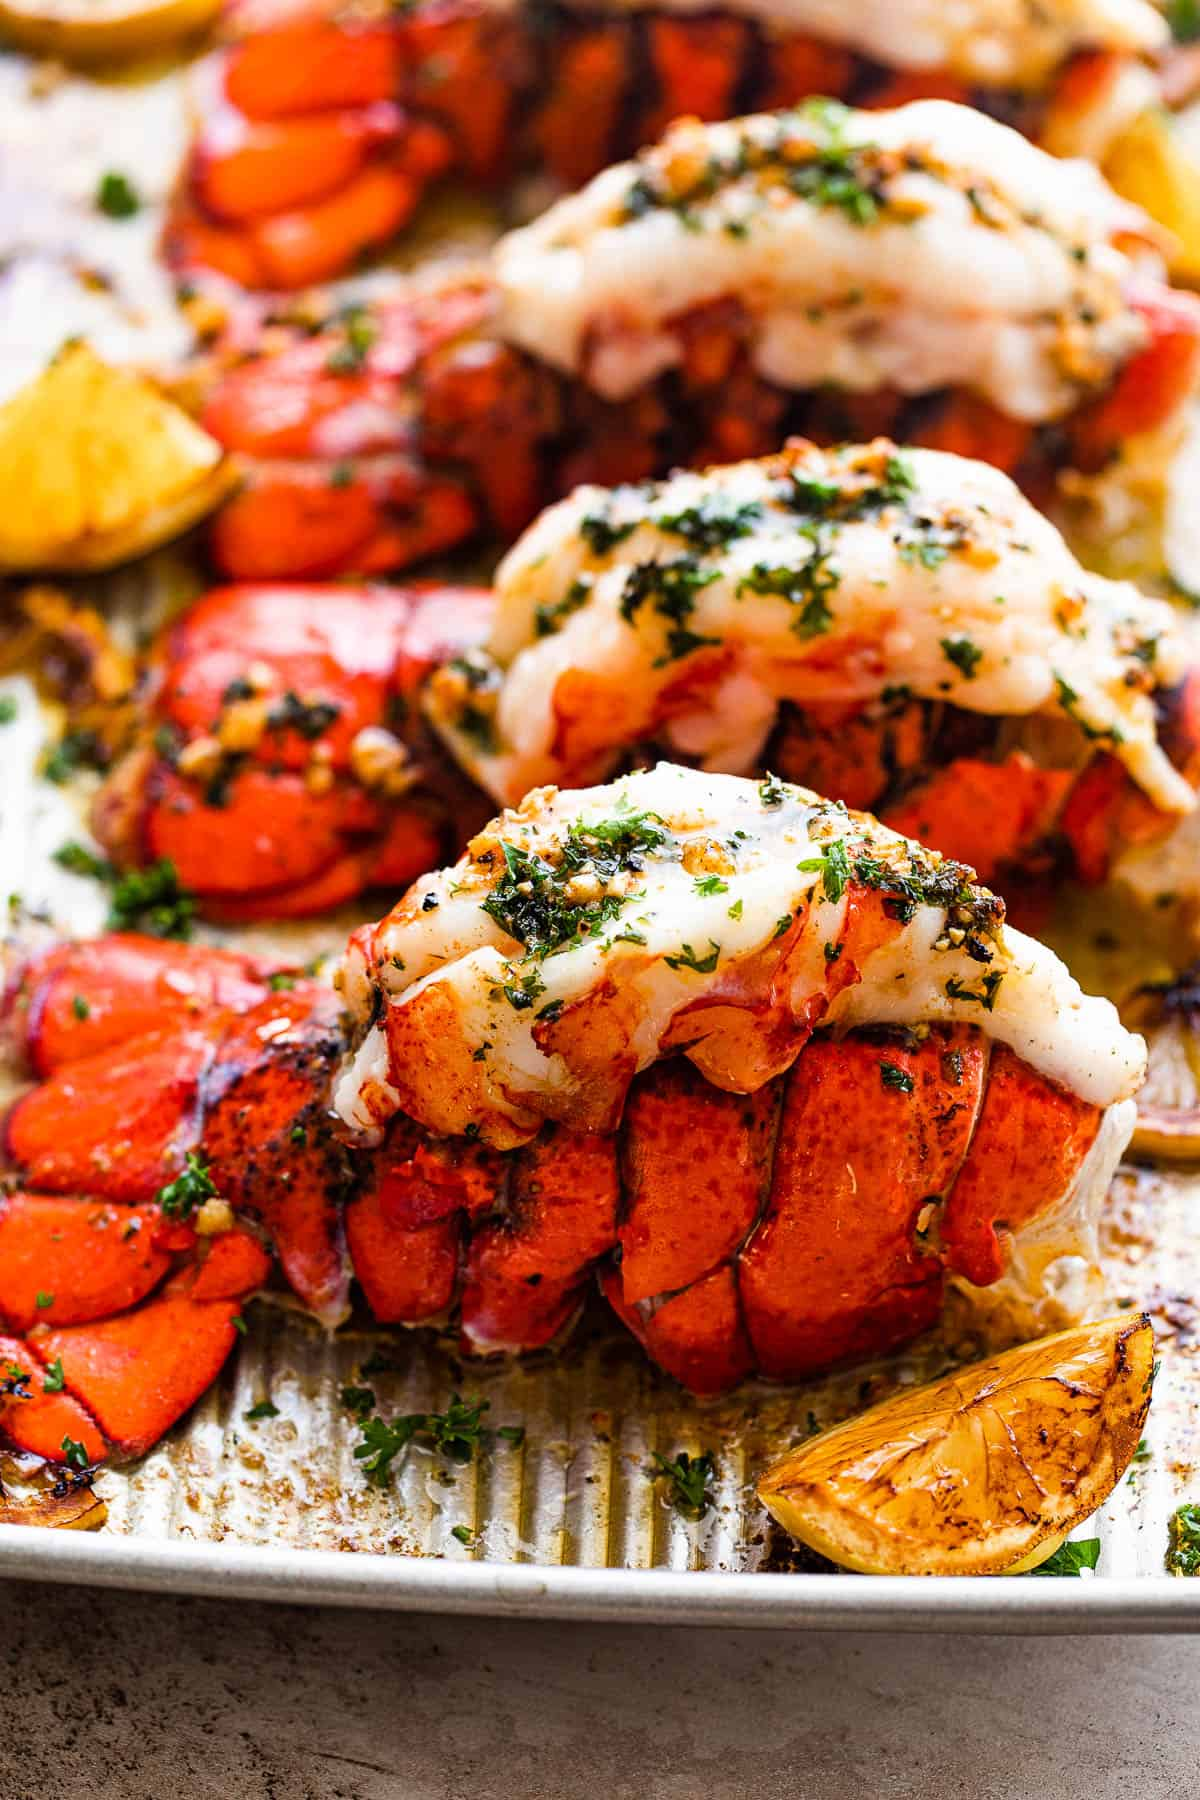 A Close-up Shot of a Baked Lobster Tail Next to a Lemon Wedge